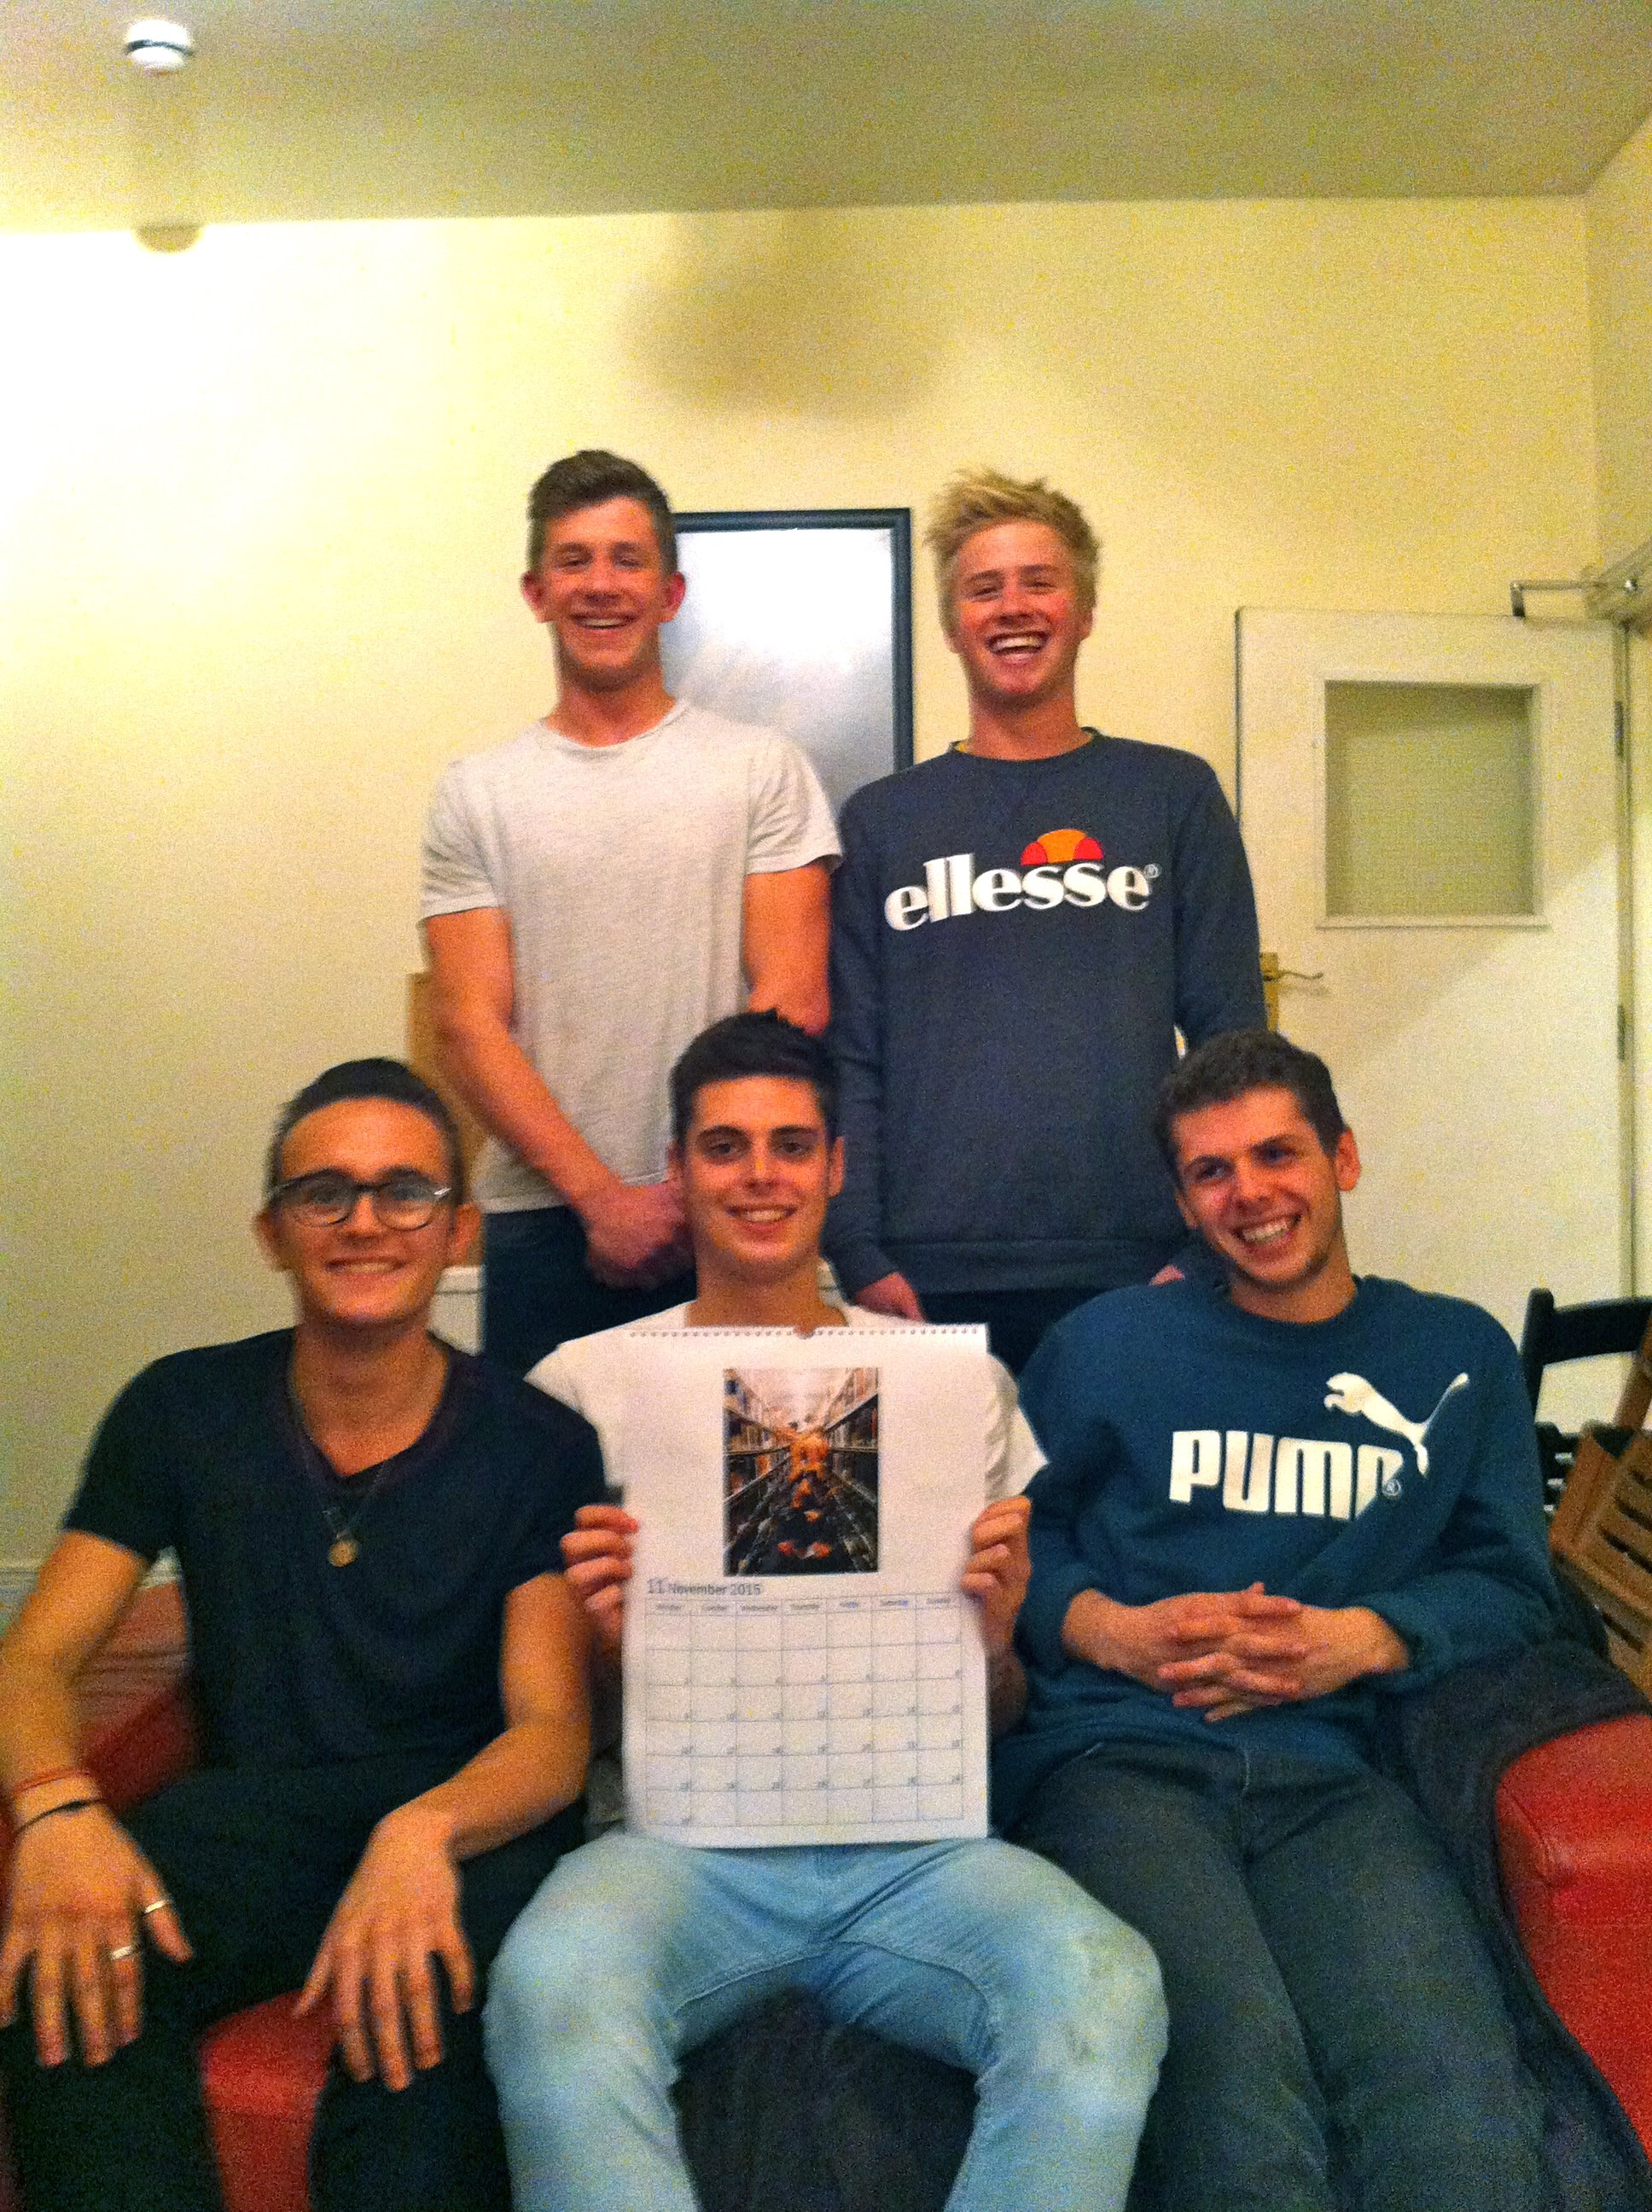 The boys with some clothes on. Back row (left to right): Rob, Ted. Front row (left to right): George, Will, Ollie.